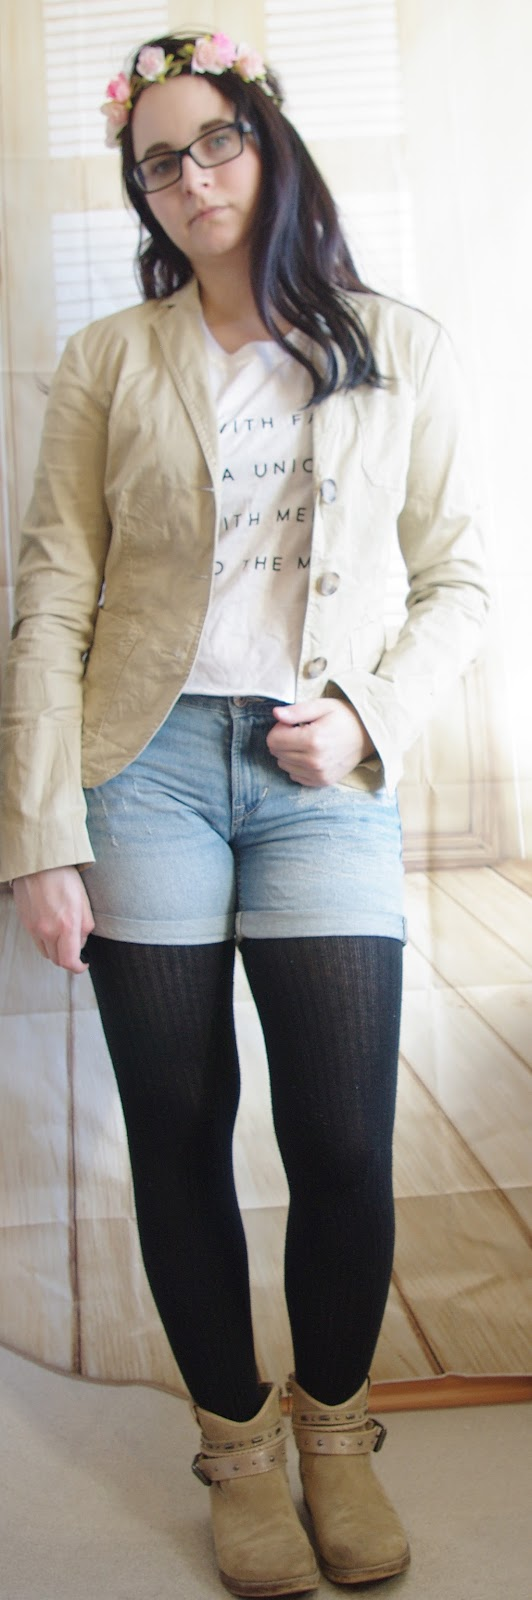 Denim Shorts, Crop Top, Blazer, Tights and Boots